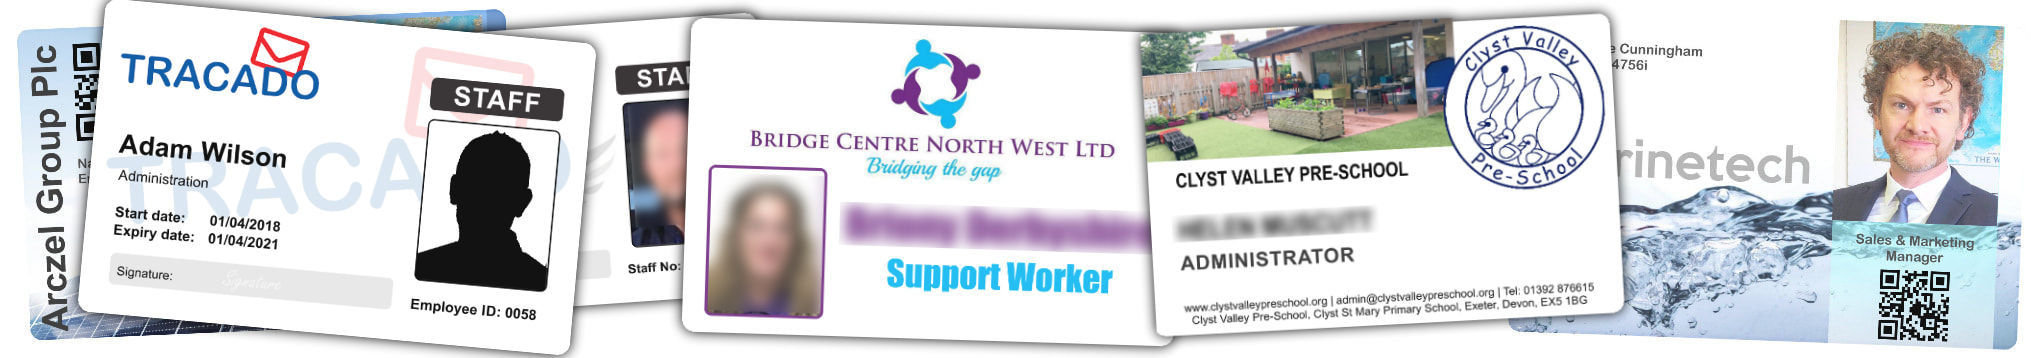 Colchester examples of staff photo ID cards | samples of employee Identity card printing | Workers ID cards printed in